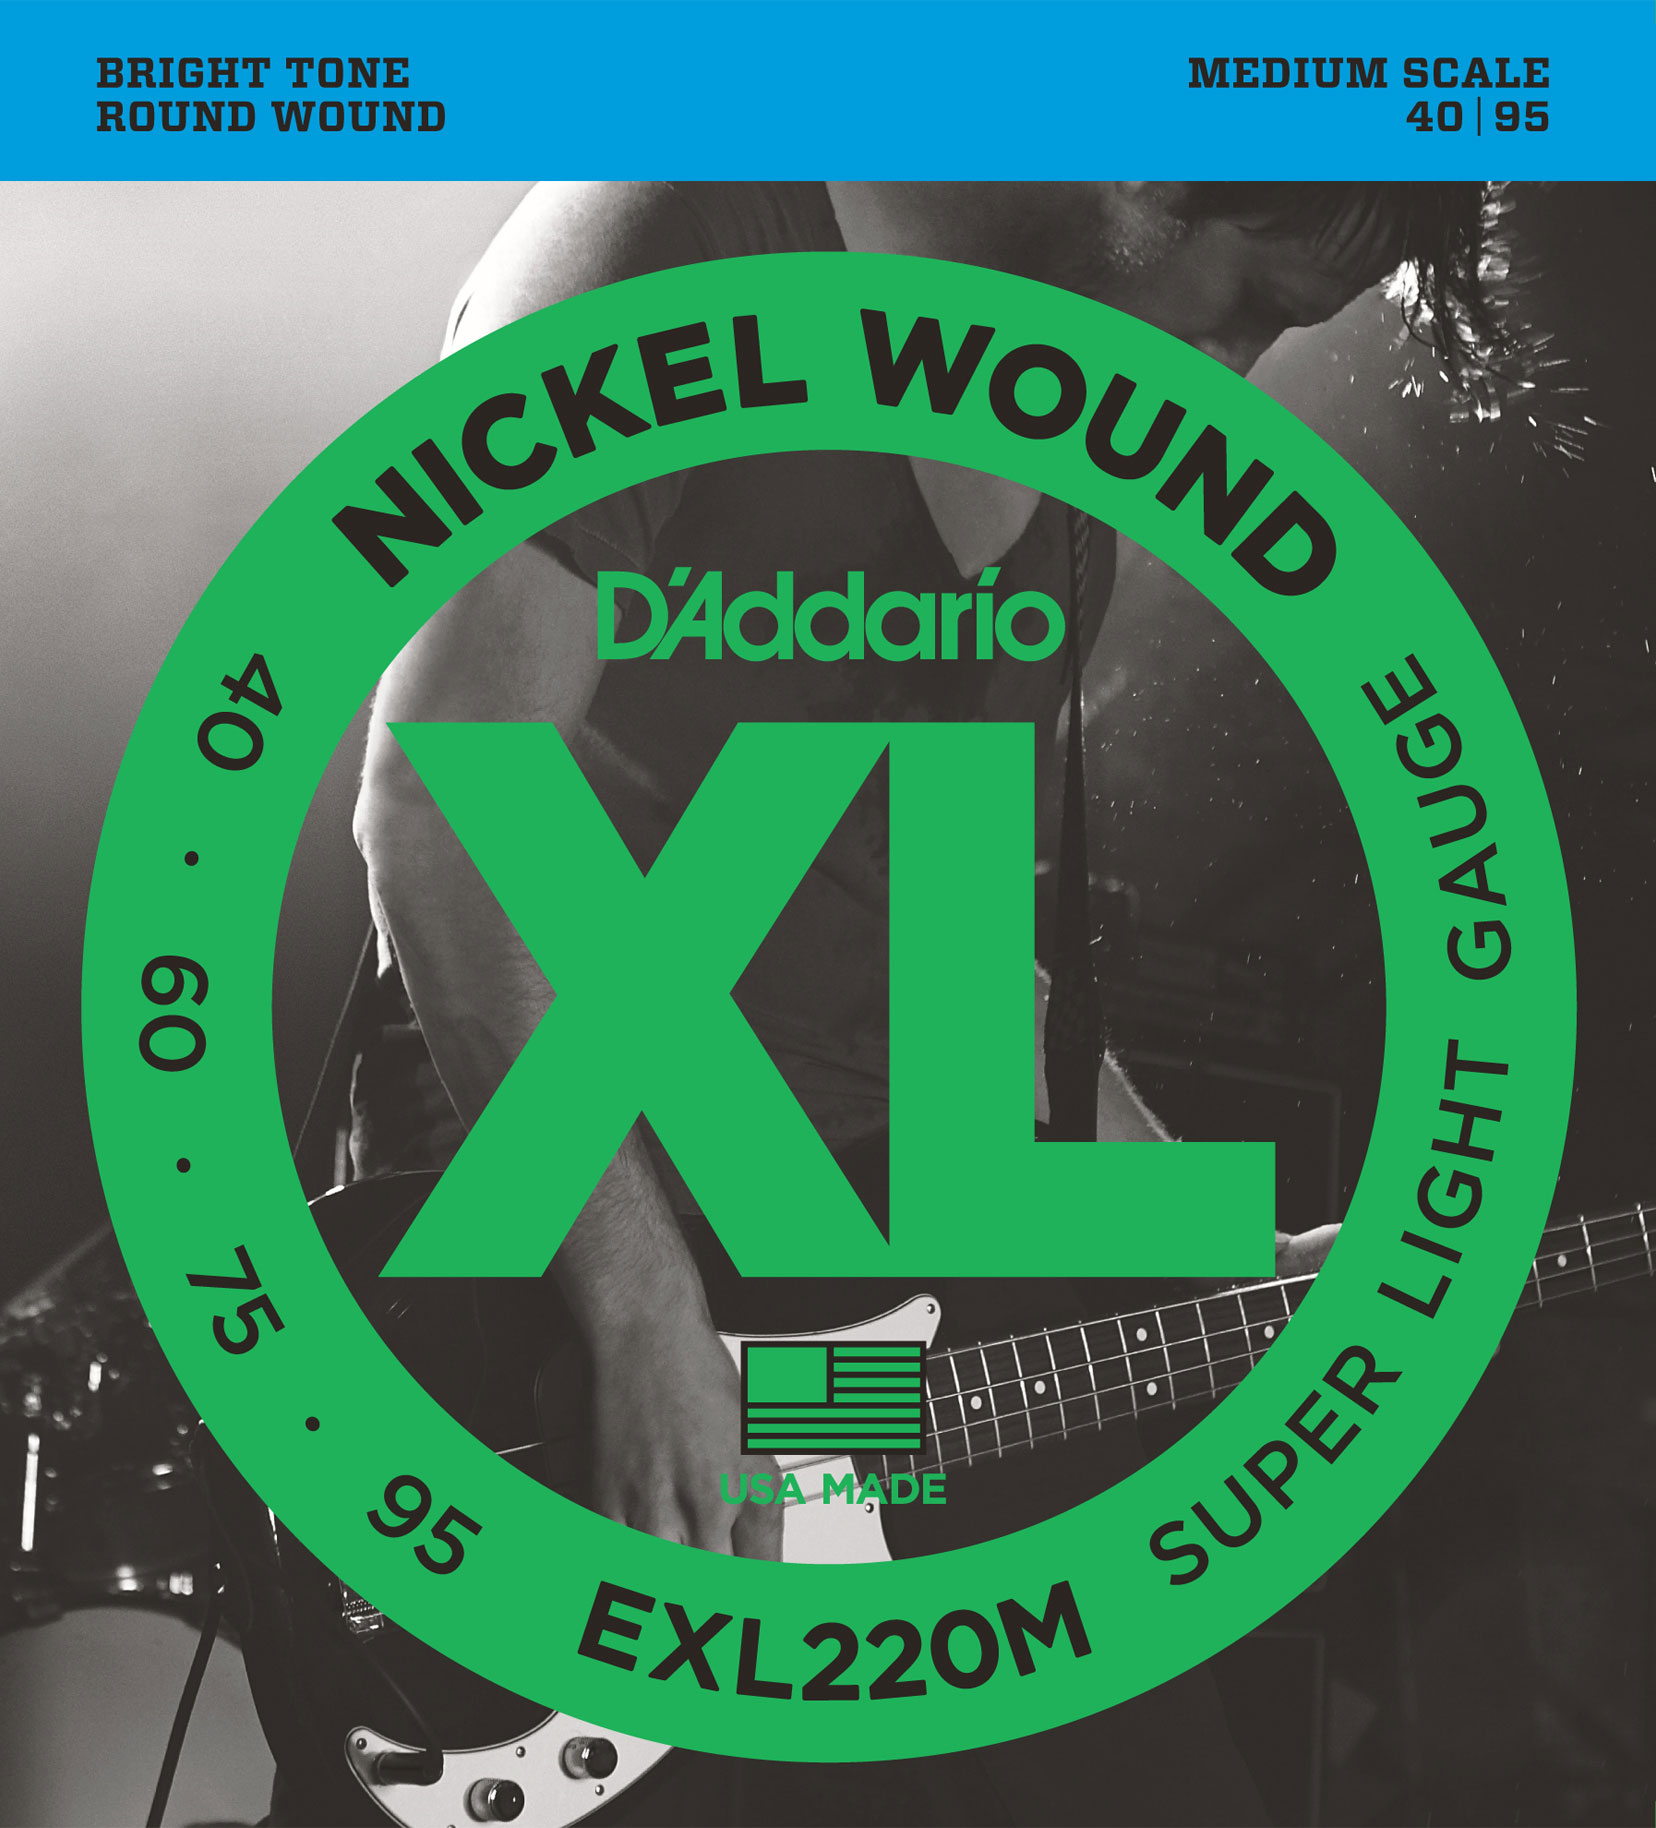 DADDARIO EXL220M SUPER LIGHT MEDIUM SCALE [40-95]